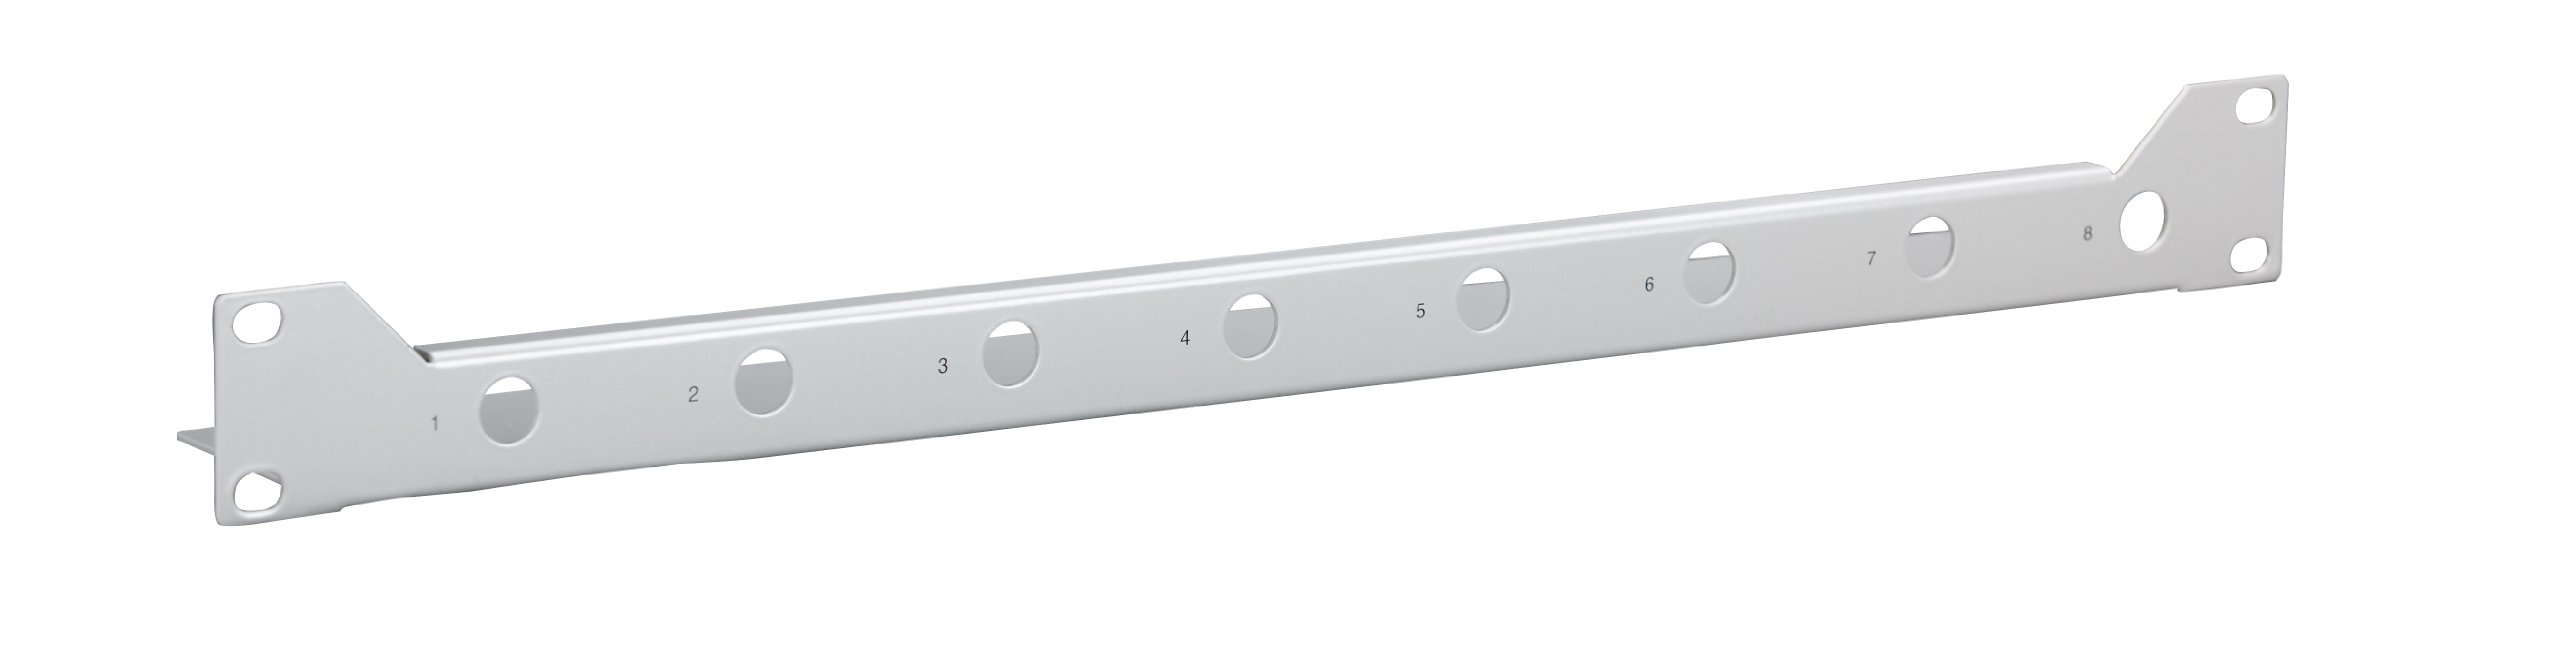 Axis Communications Mounting Bracket for Network Equipment 5026-421